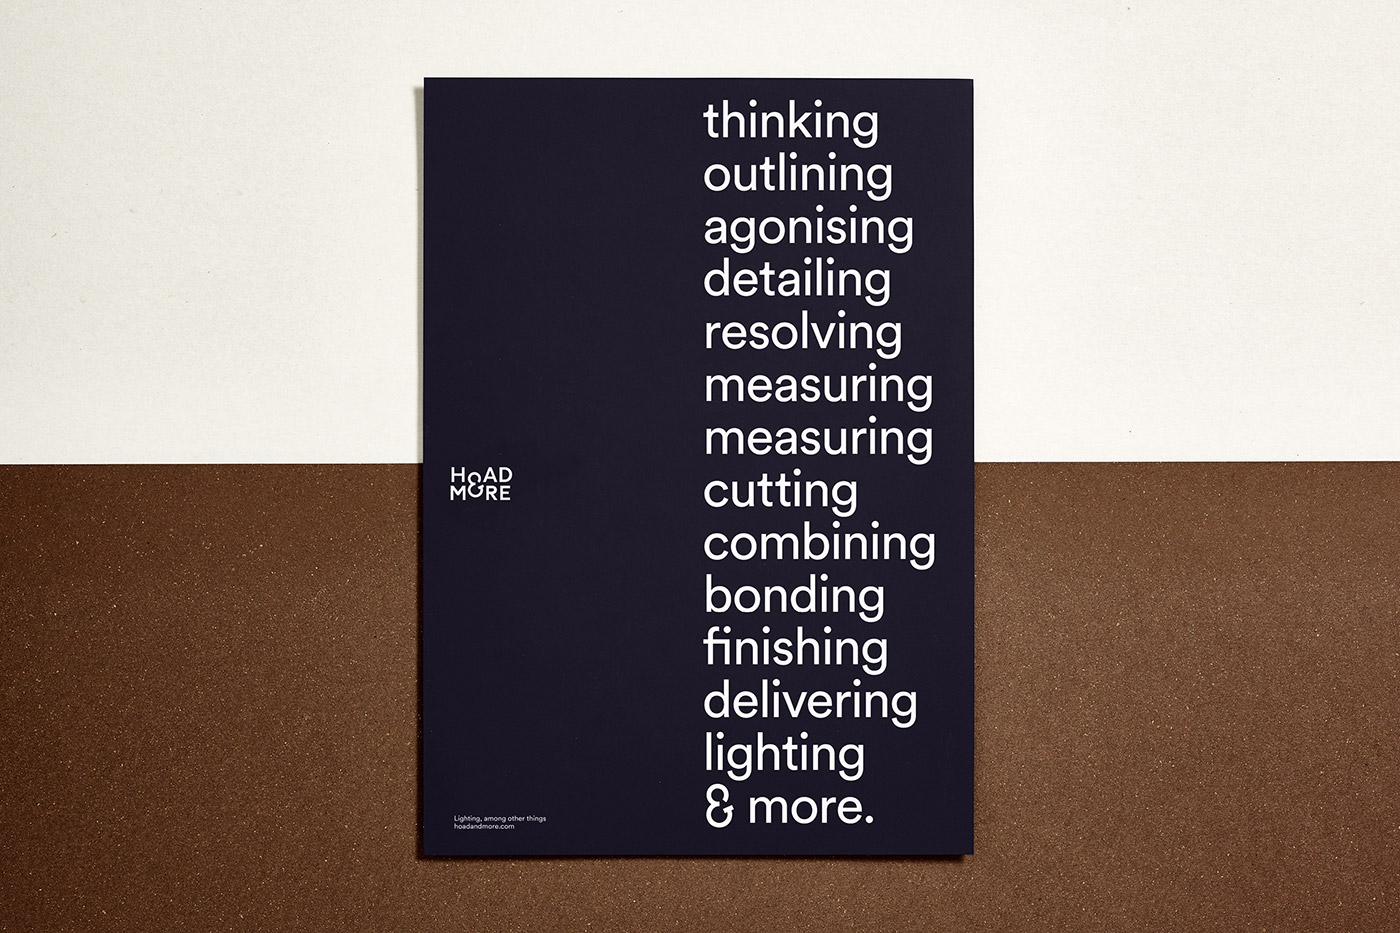 Hoad & More identity design